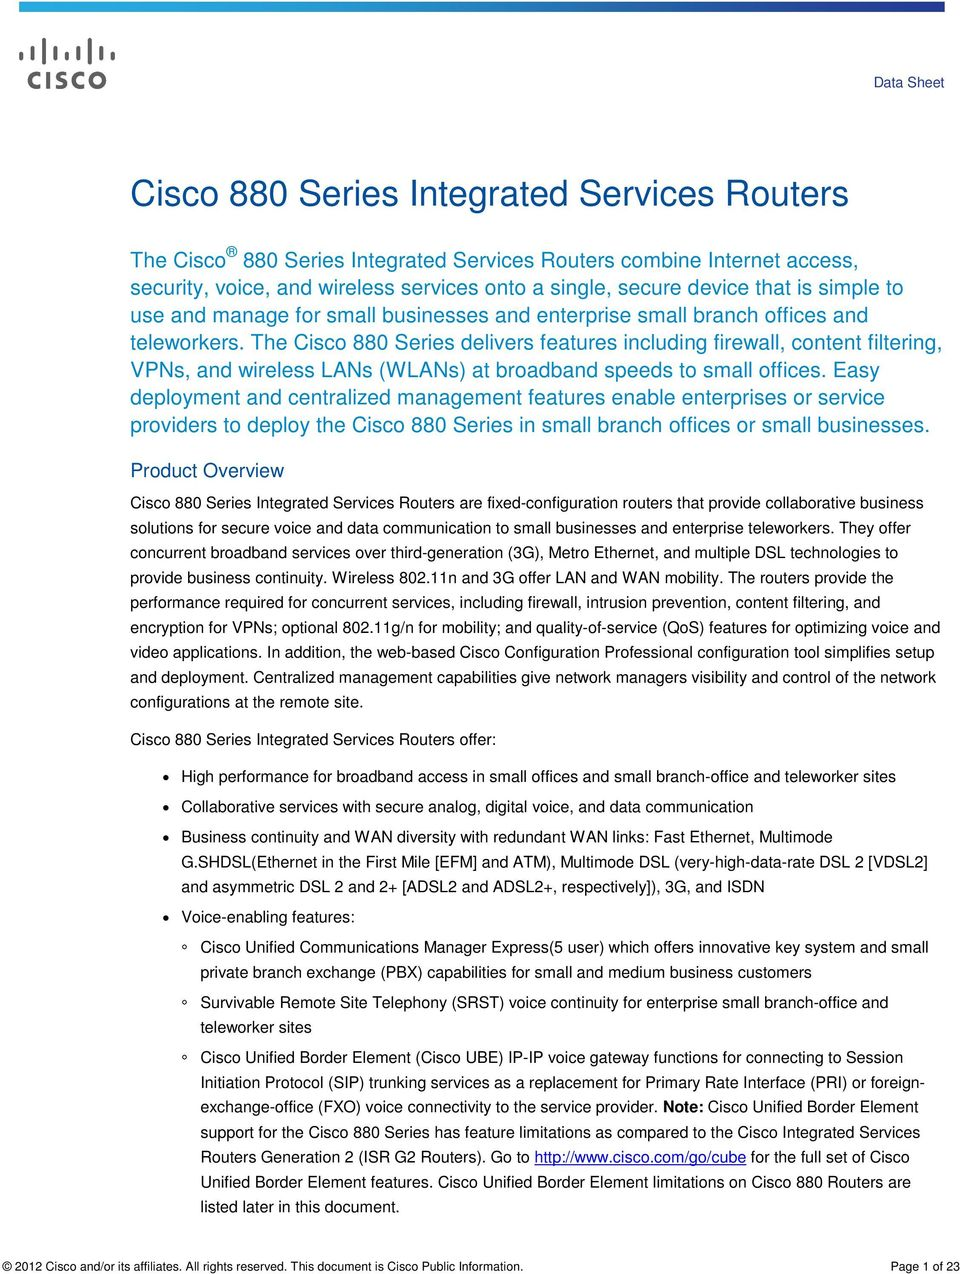 The Cisco 880 Series delivers features including firewall, content filtering, VPNs, and wireless LANs (WLANs) at broadband speeds to small offices.